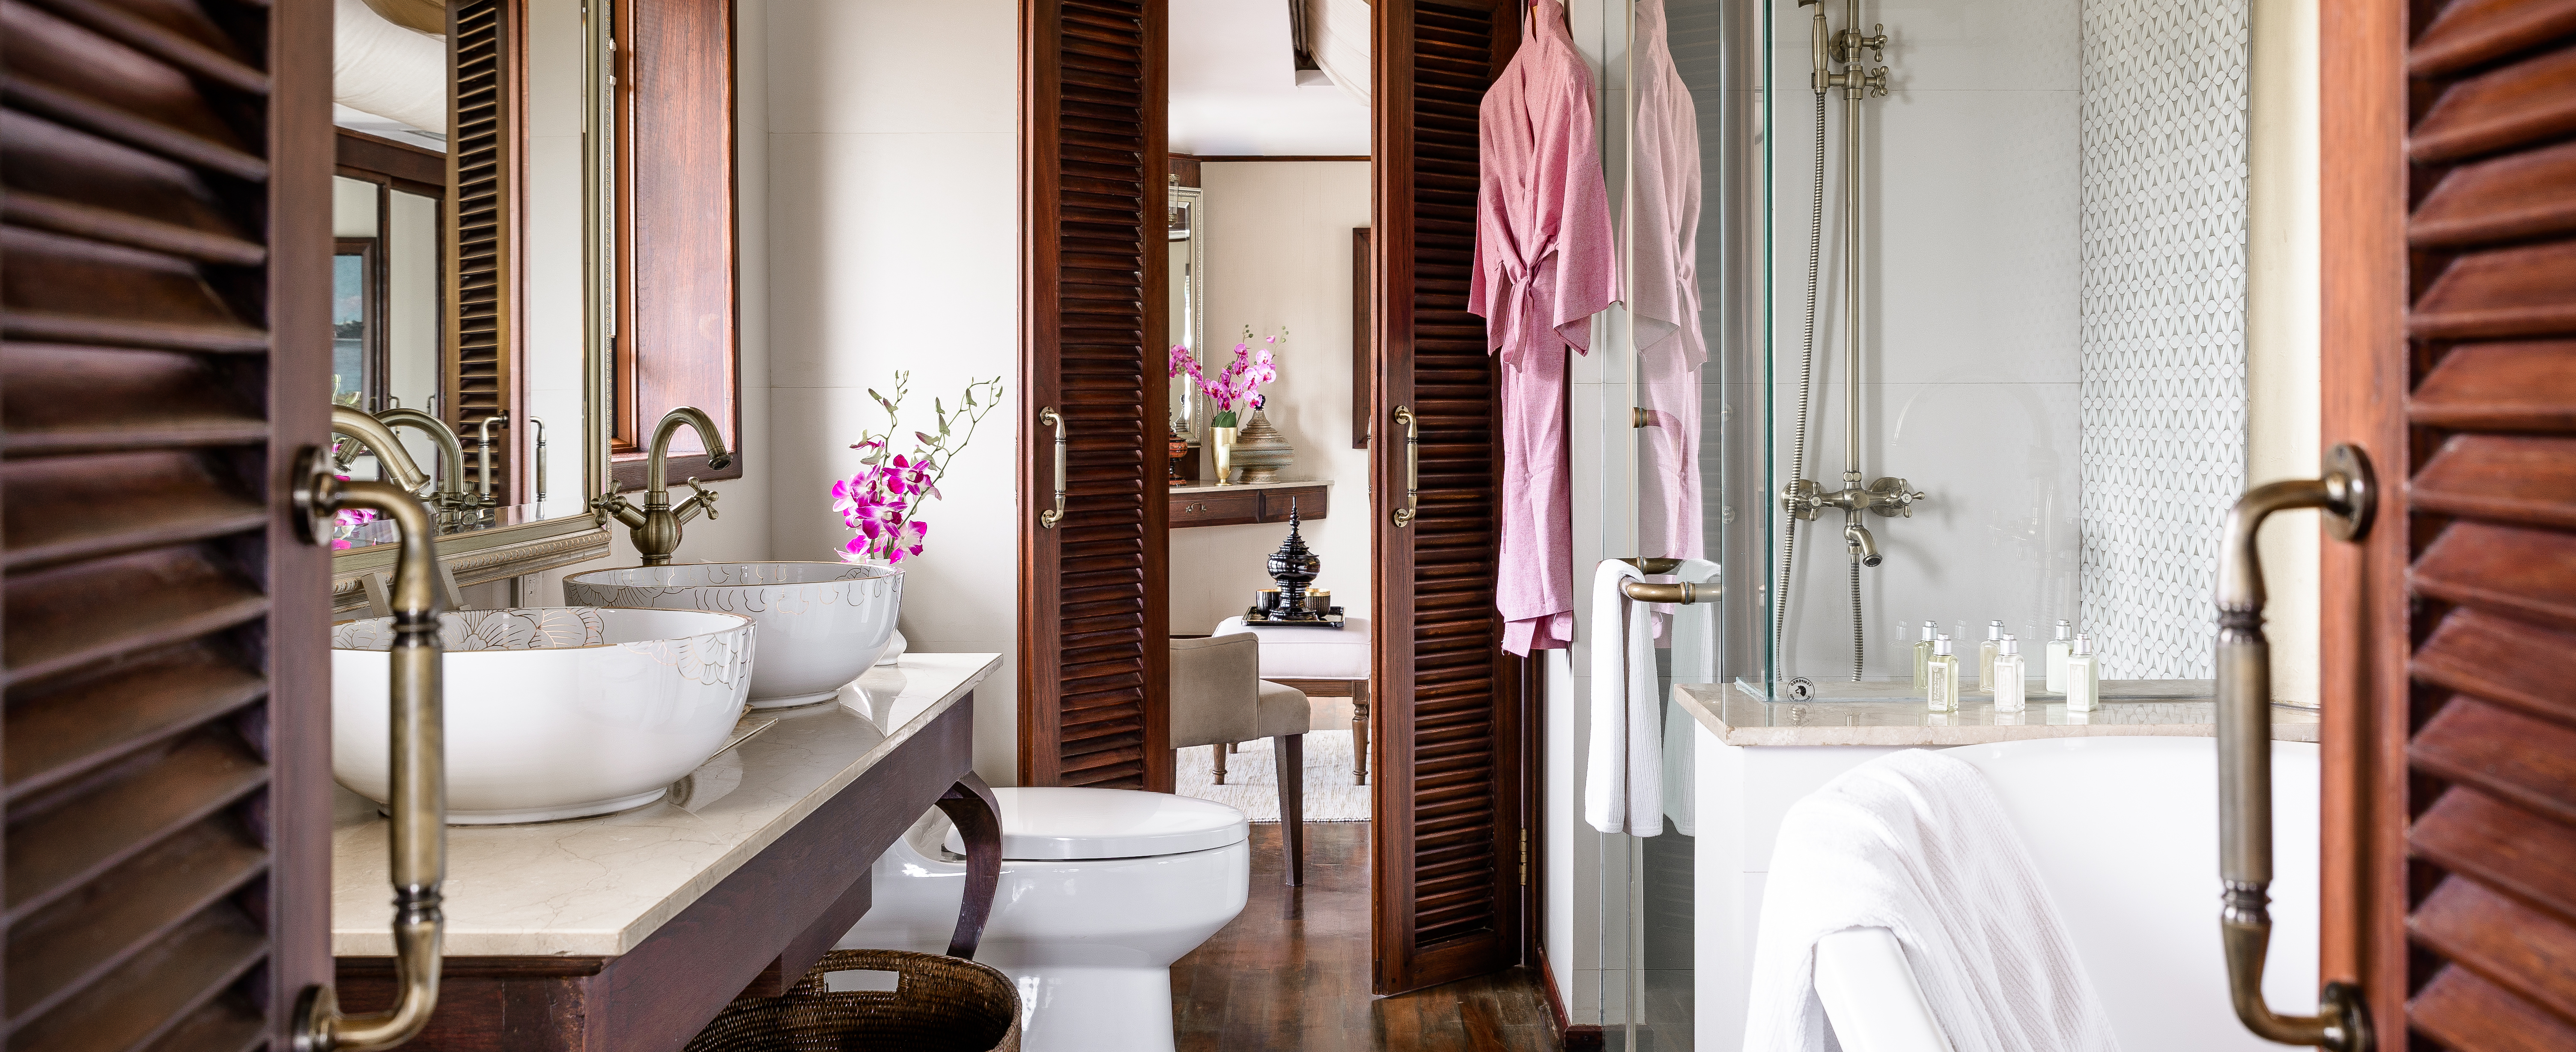 sanctuary-ananda-bathroom